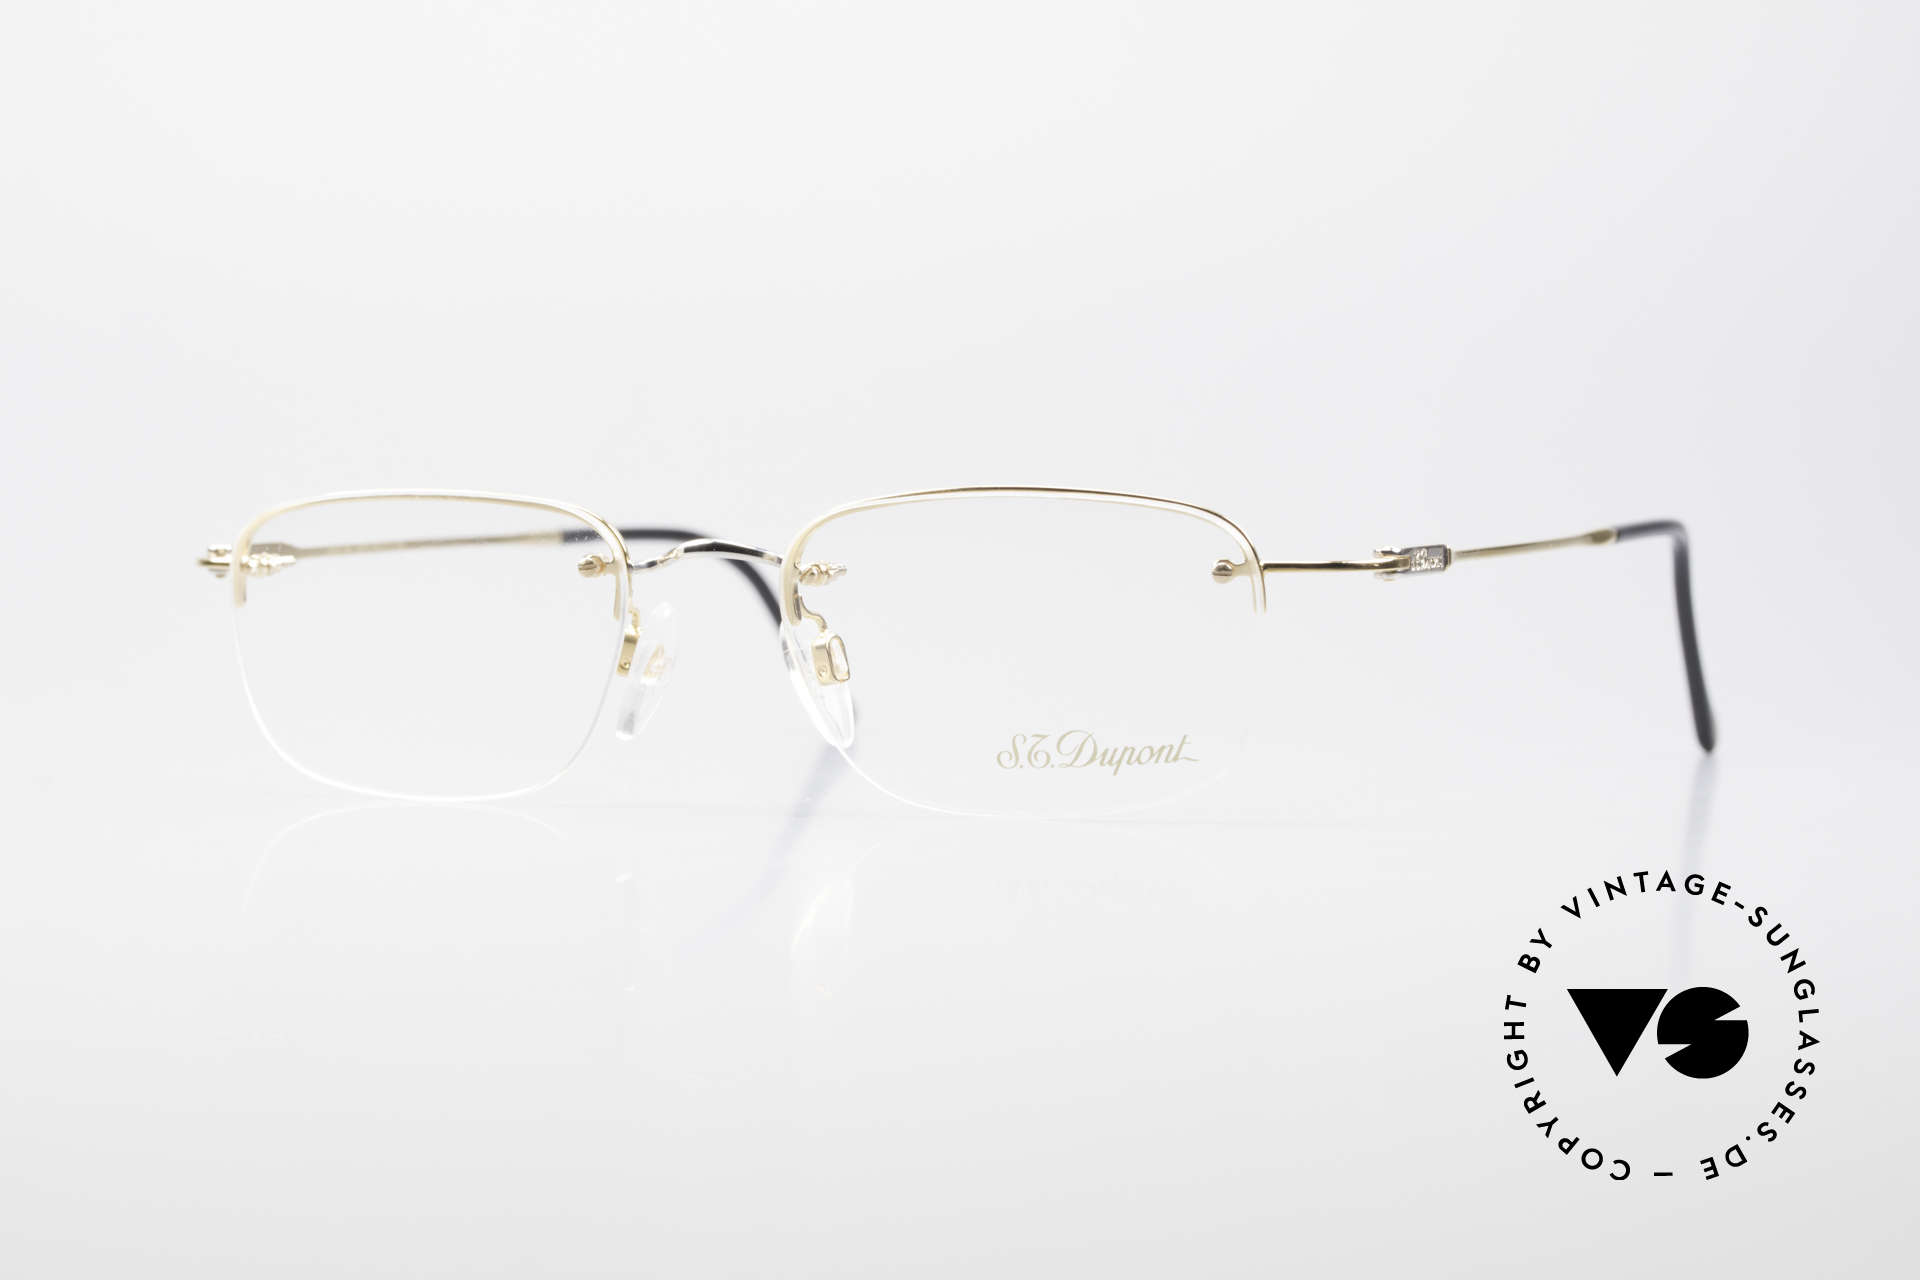 S.T. Dupont D523 Rimless Glasses Avance 2000's, old S.T. DUPONT luxury glasses, model D523 from 2001, Made for Men and Women